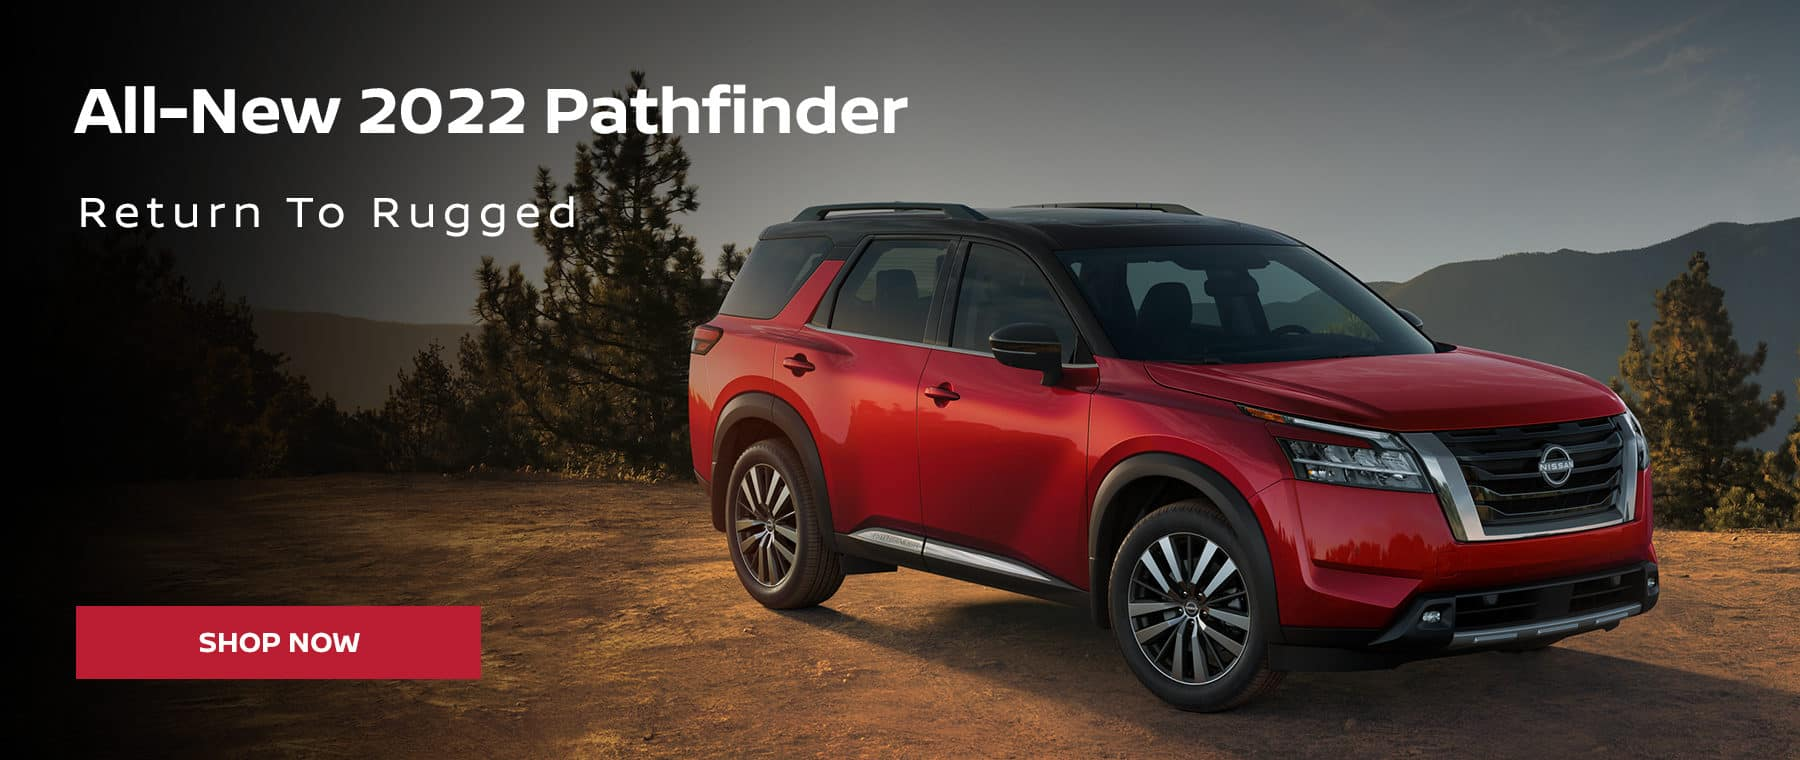 All-New 2022 Pathfinder Return To Rugged